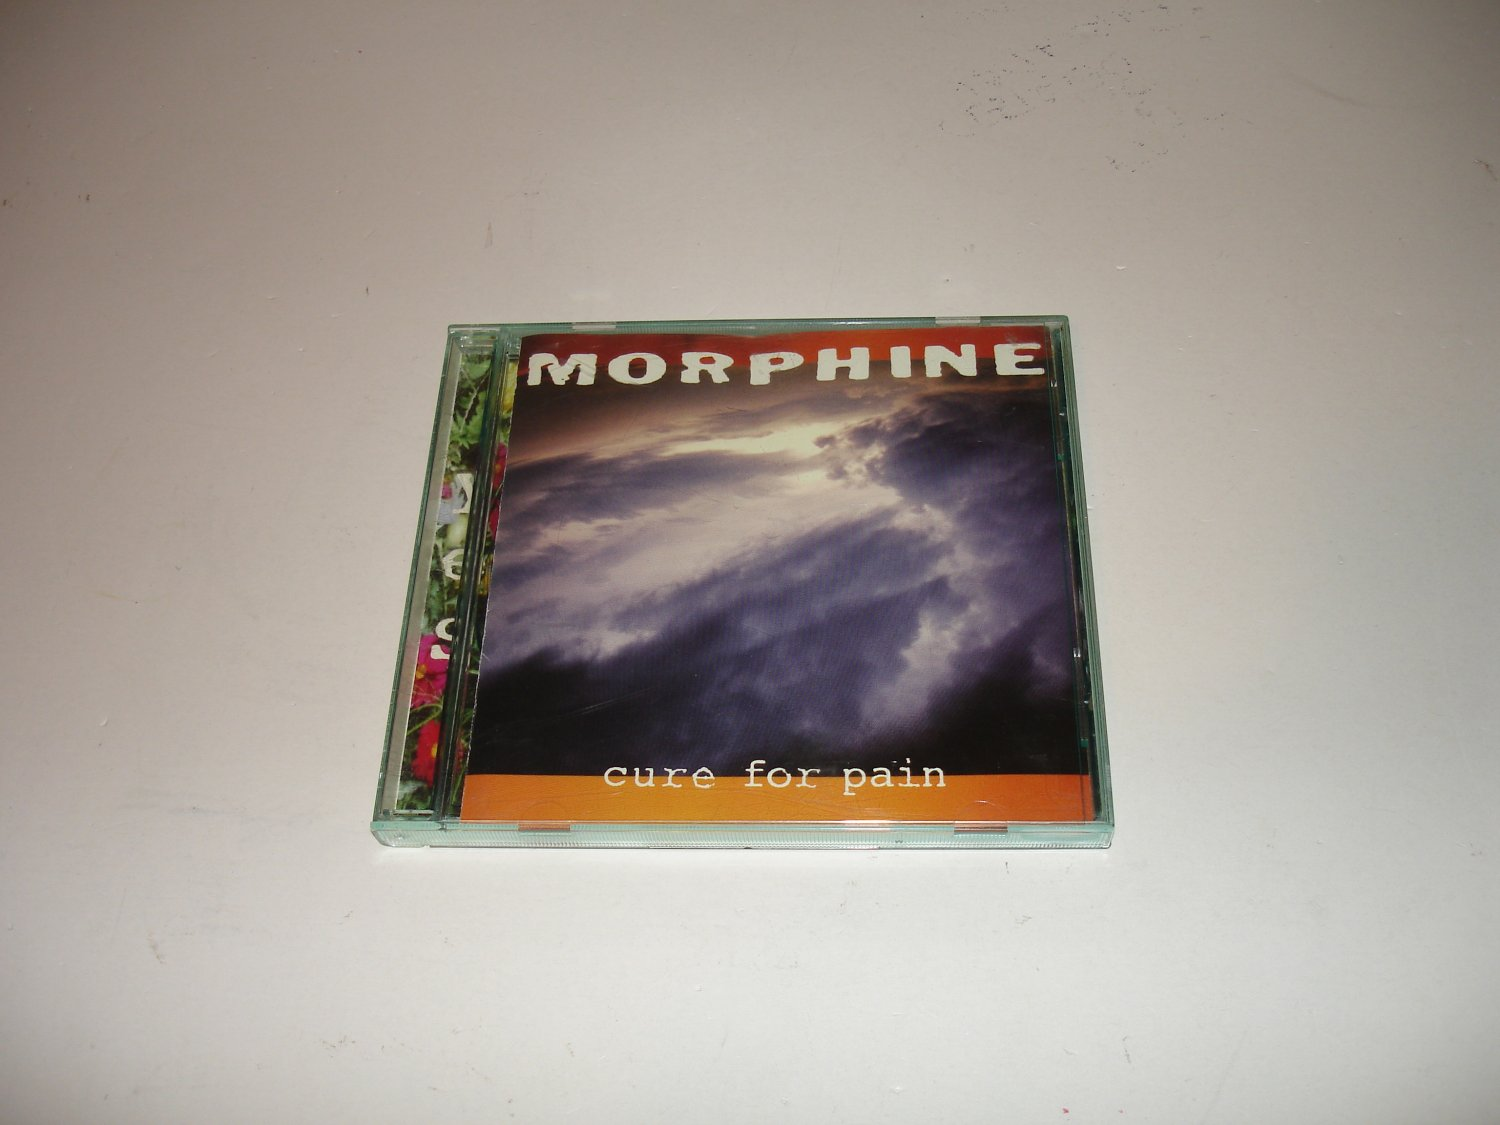 Morphine - cure for pain (RCD 10262) on audio CD